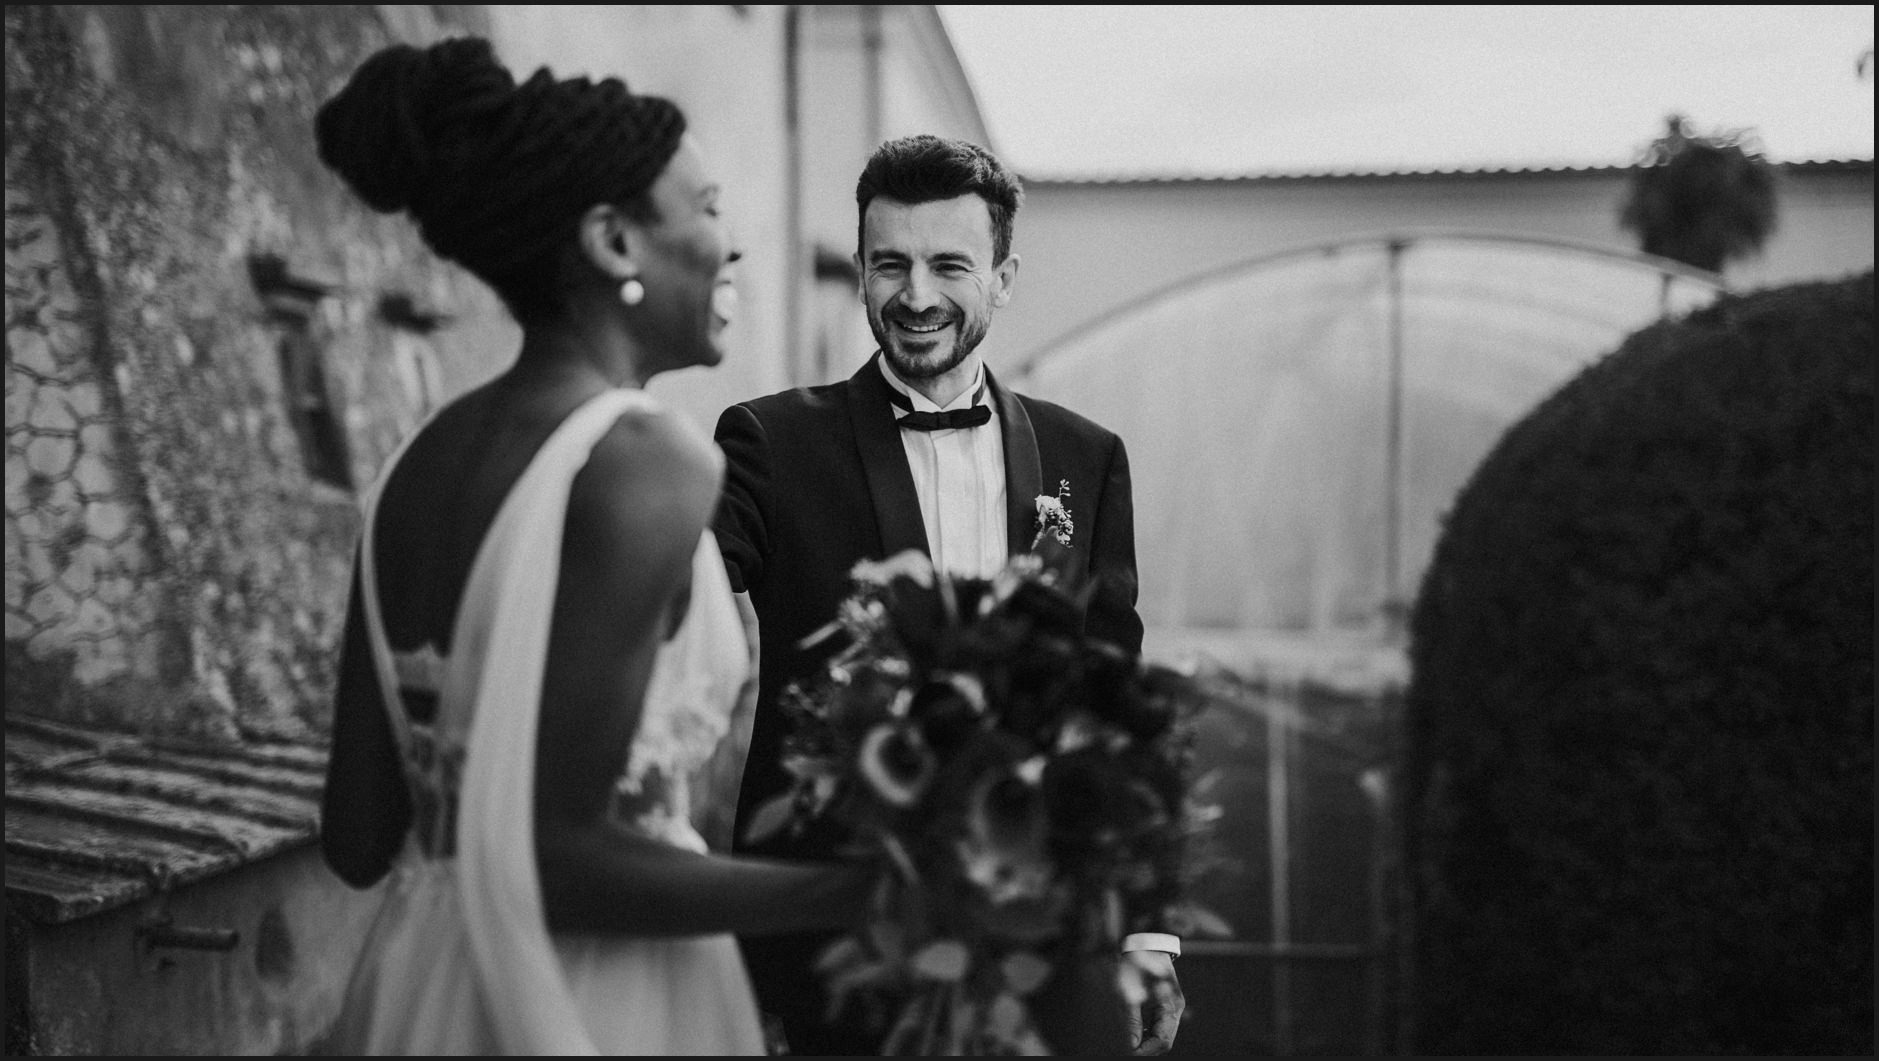 first look, bride, groom, wedding, villa medicea di Lilliano, black and white